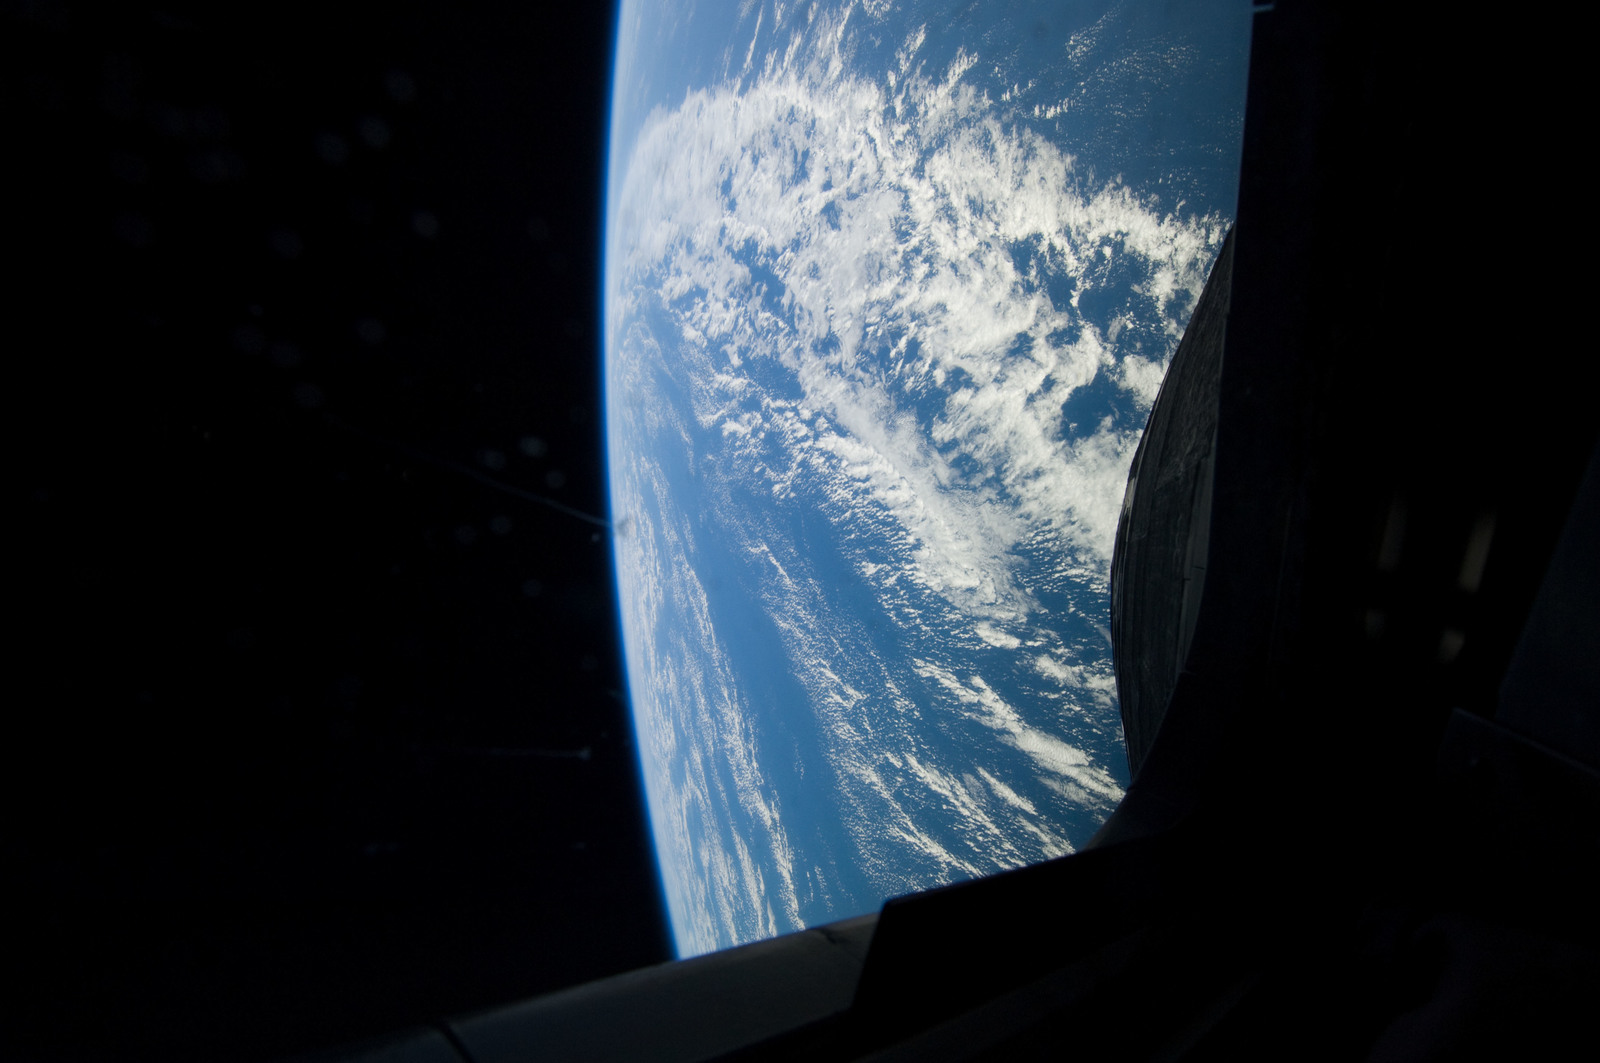 s133E006952 - STS-133 - Earth Observation taken by the STS-133 crew